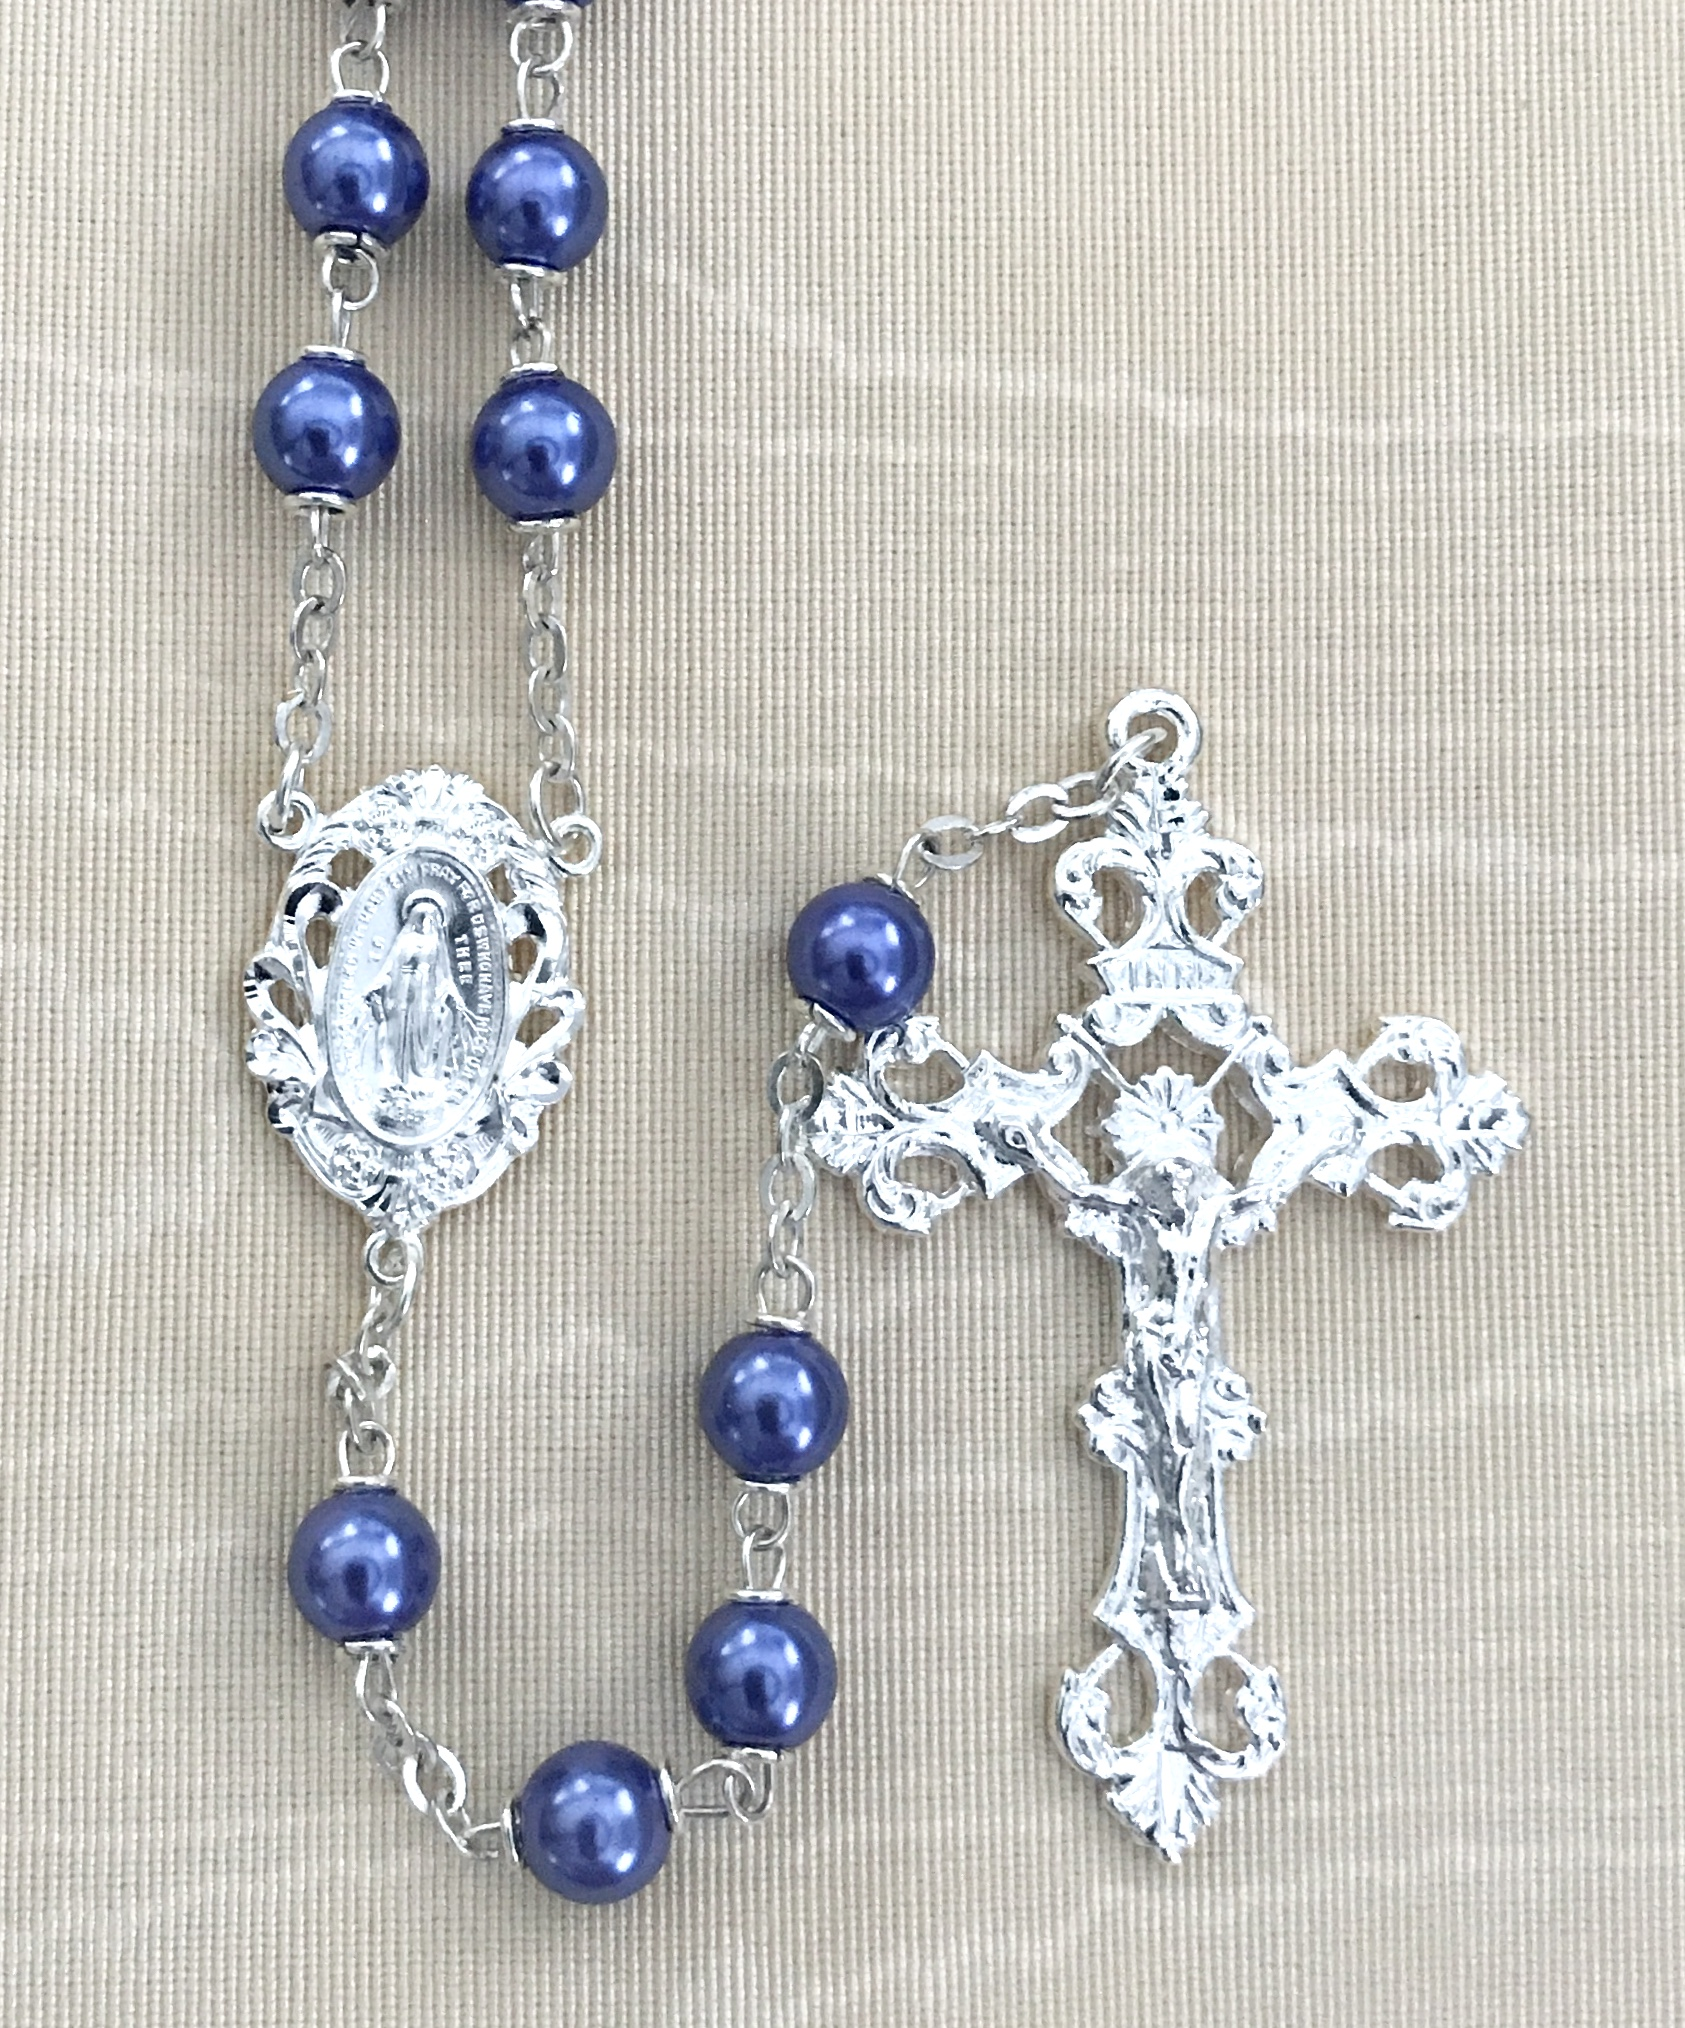 7mm ROUND PURPLE PEARL ROSARY WITH STERLING SILVER PLATED CRUCIFIX AND CENTER GIFT BOXED